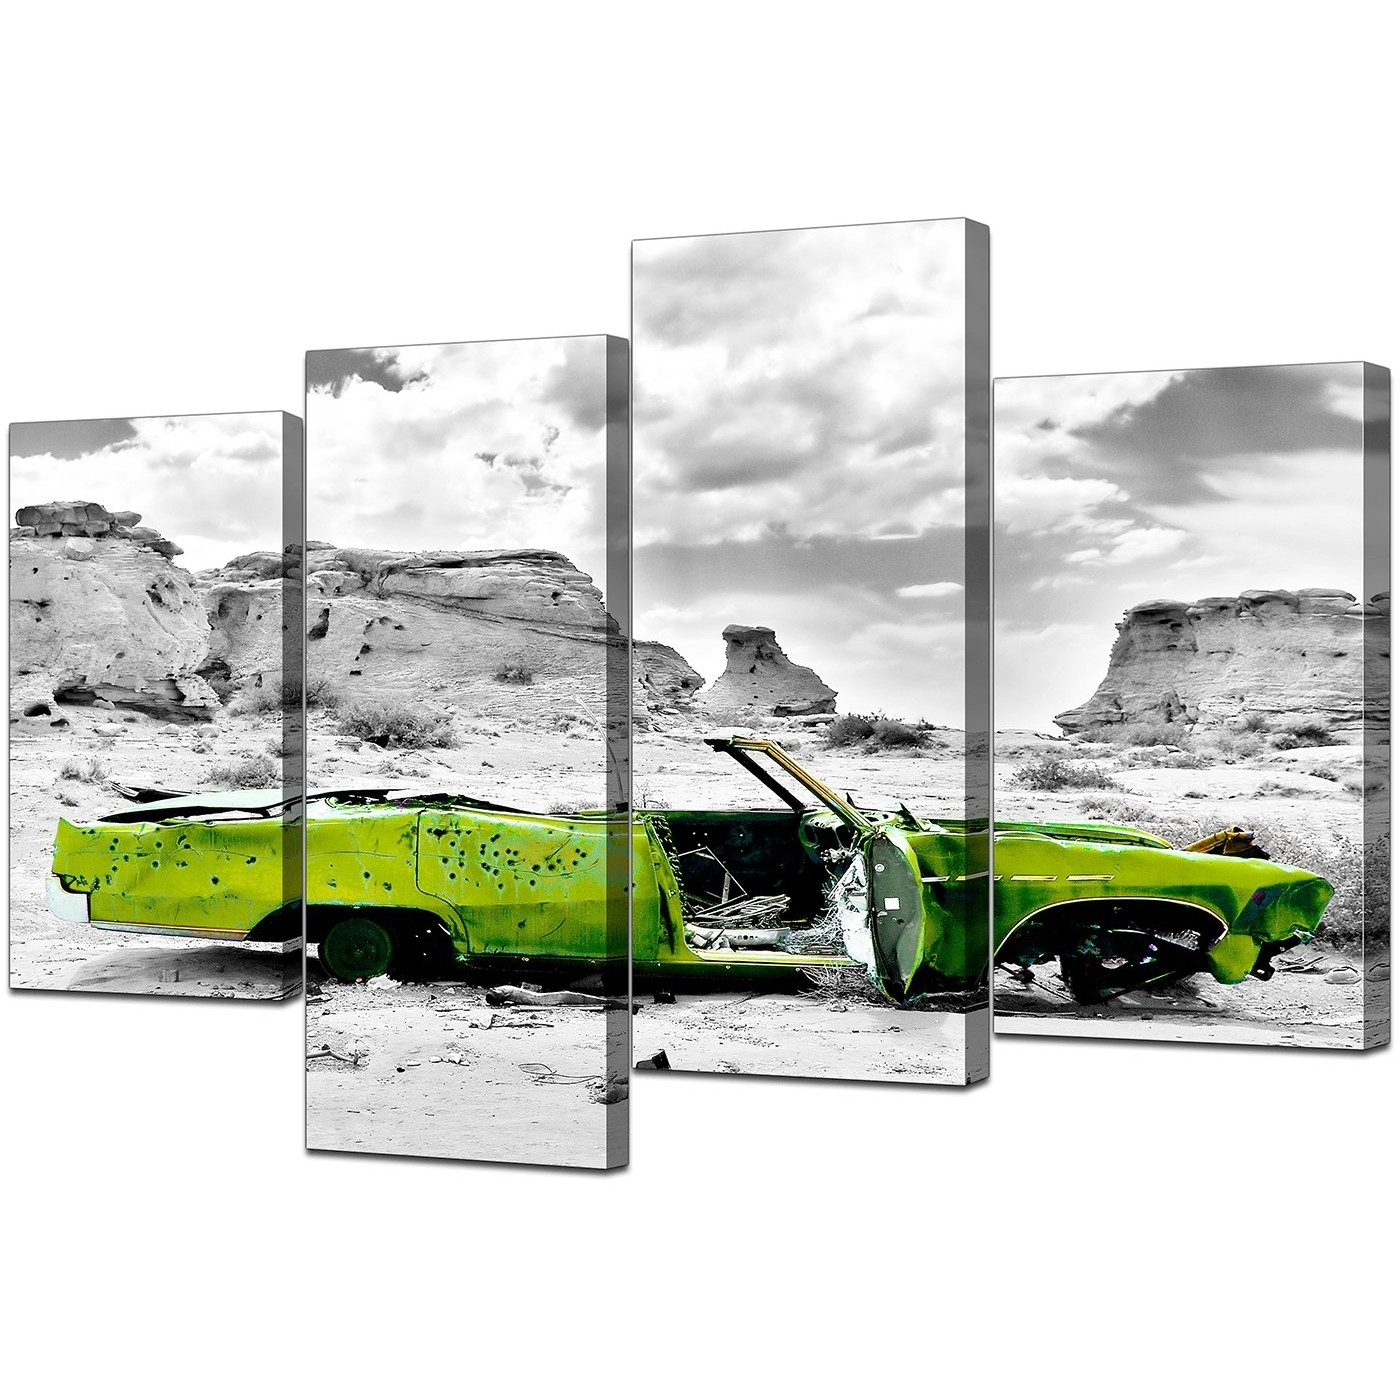 Preferred Car Canvas Wall Art In Canvas Art Of Green Car In Black & White For Your Office (View 16 of 20)